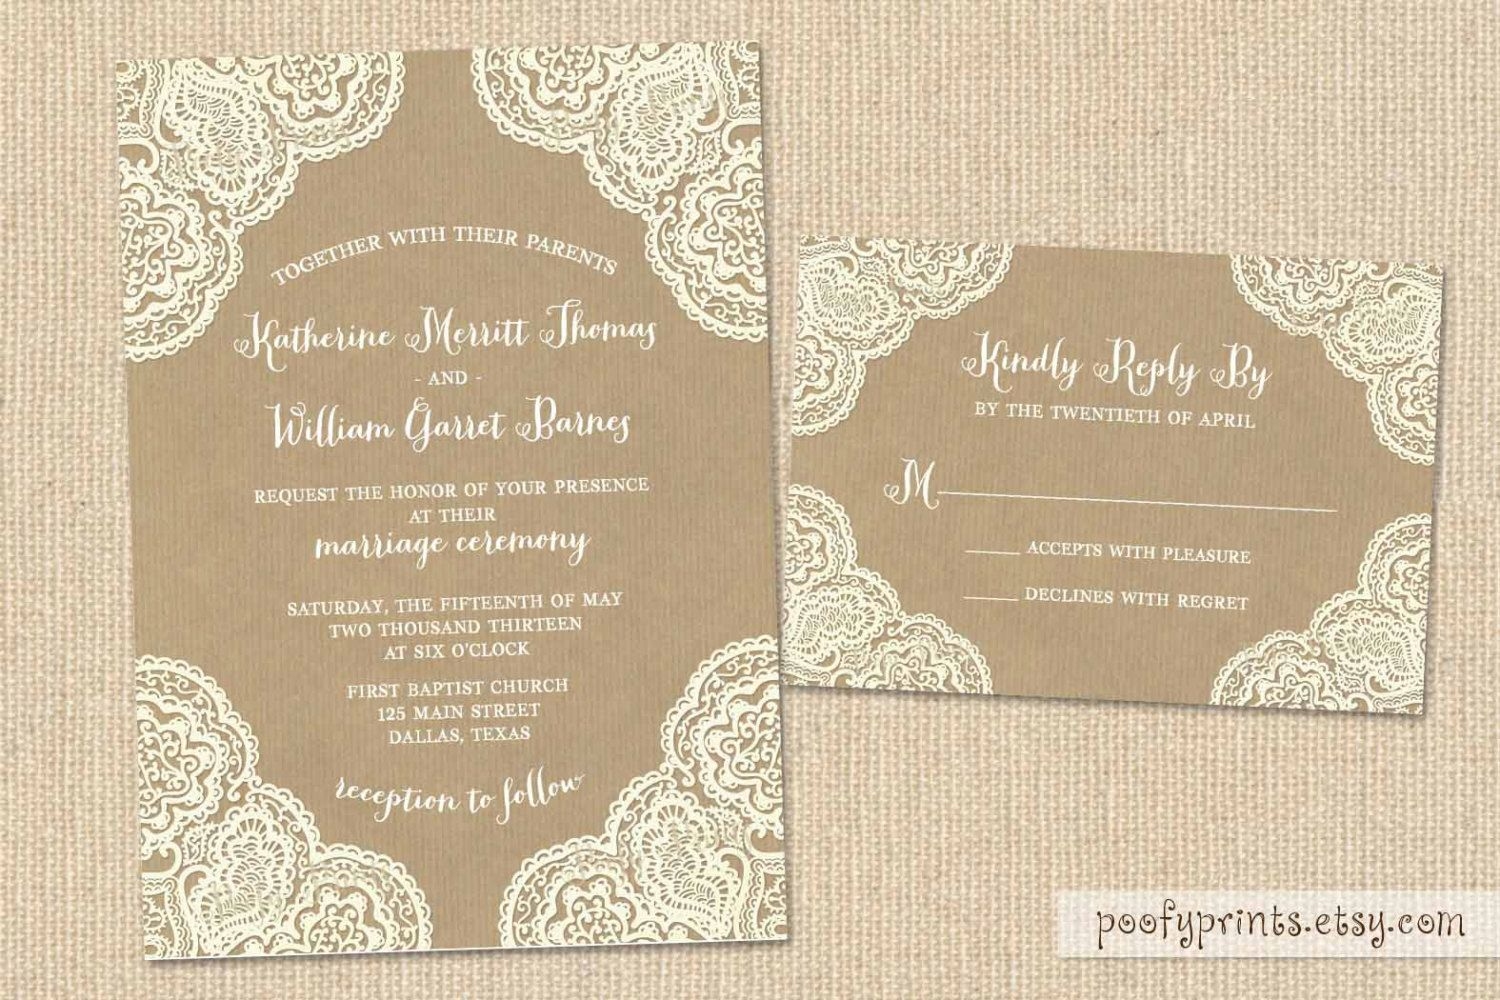 Rustic Lace Wedding Invitation Suite With Kraft Paper Background